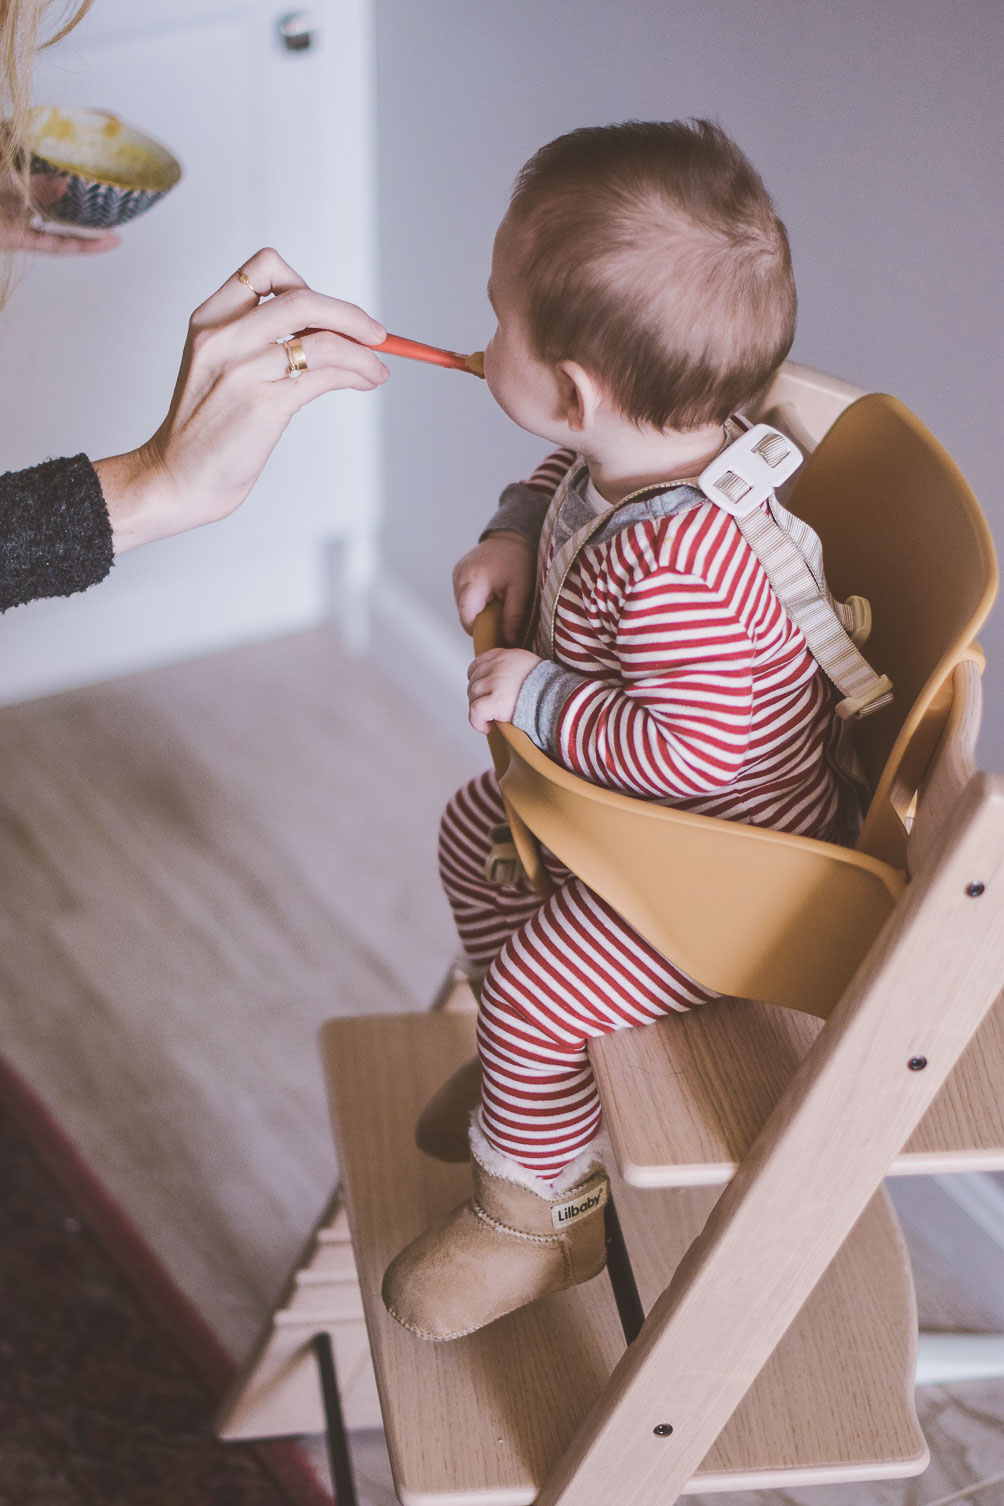 Stokke Tripp Trapp high chair bringing baby closer to the table